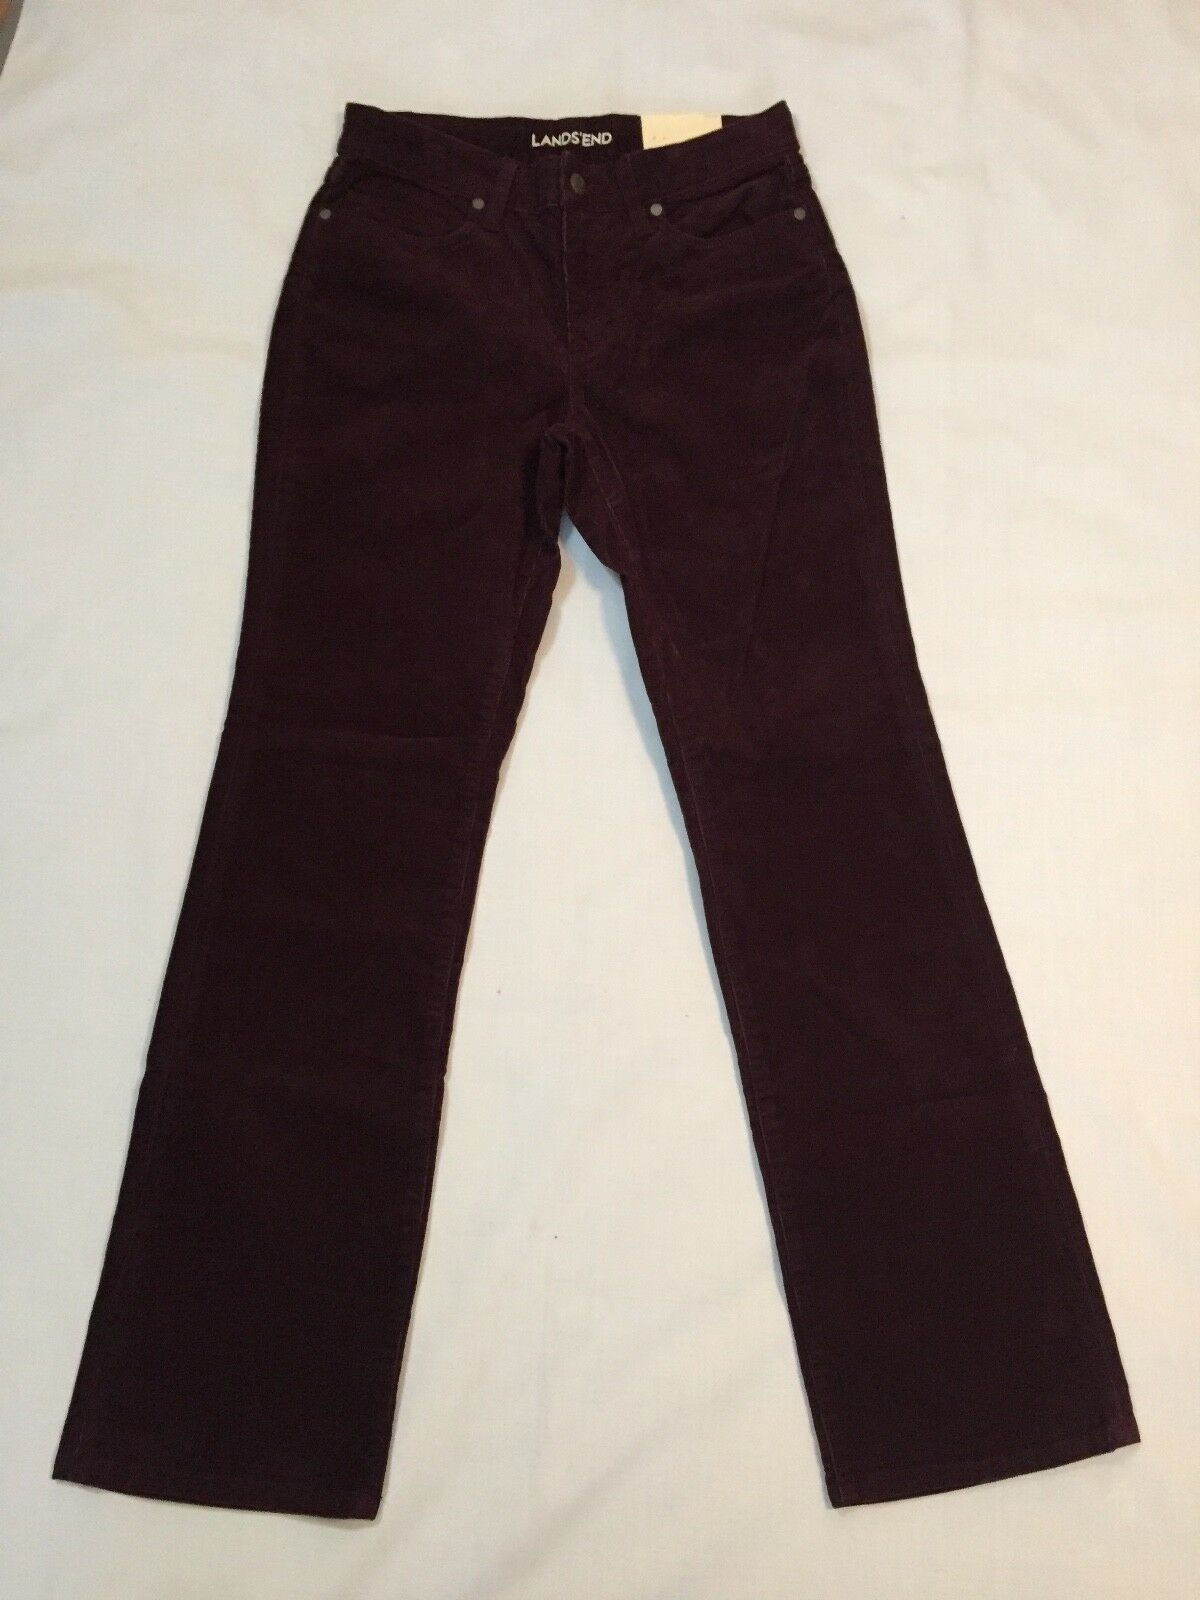 Lands' End Women's Mid Rise Corduroy Demi Boot Pants Size 6 New with Tags